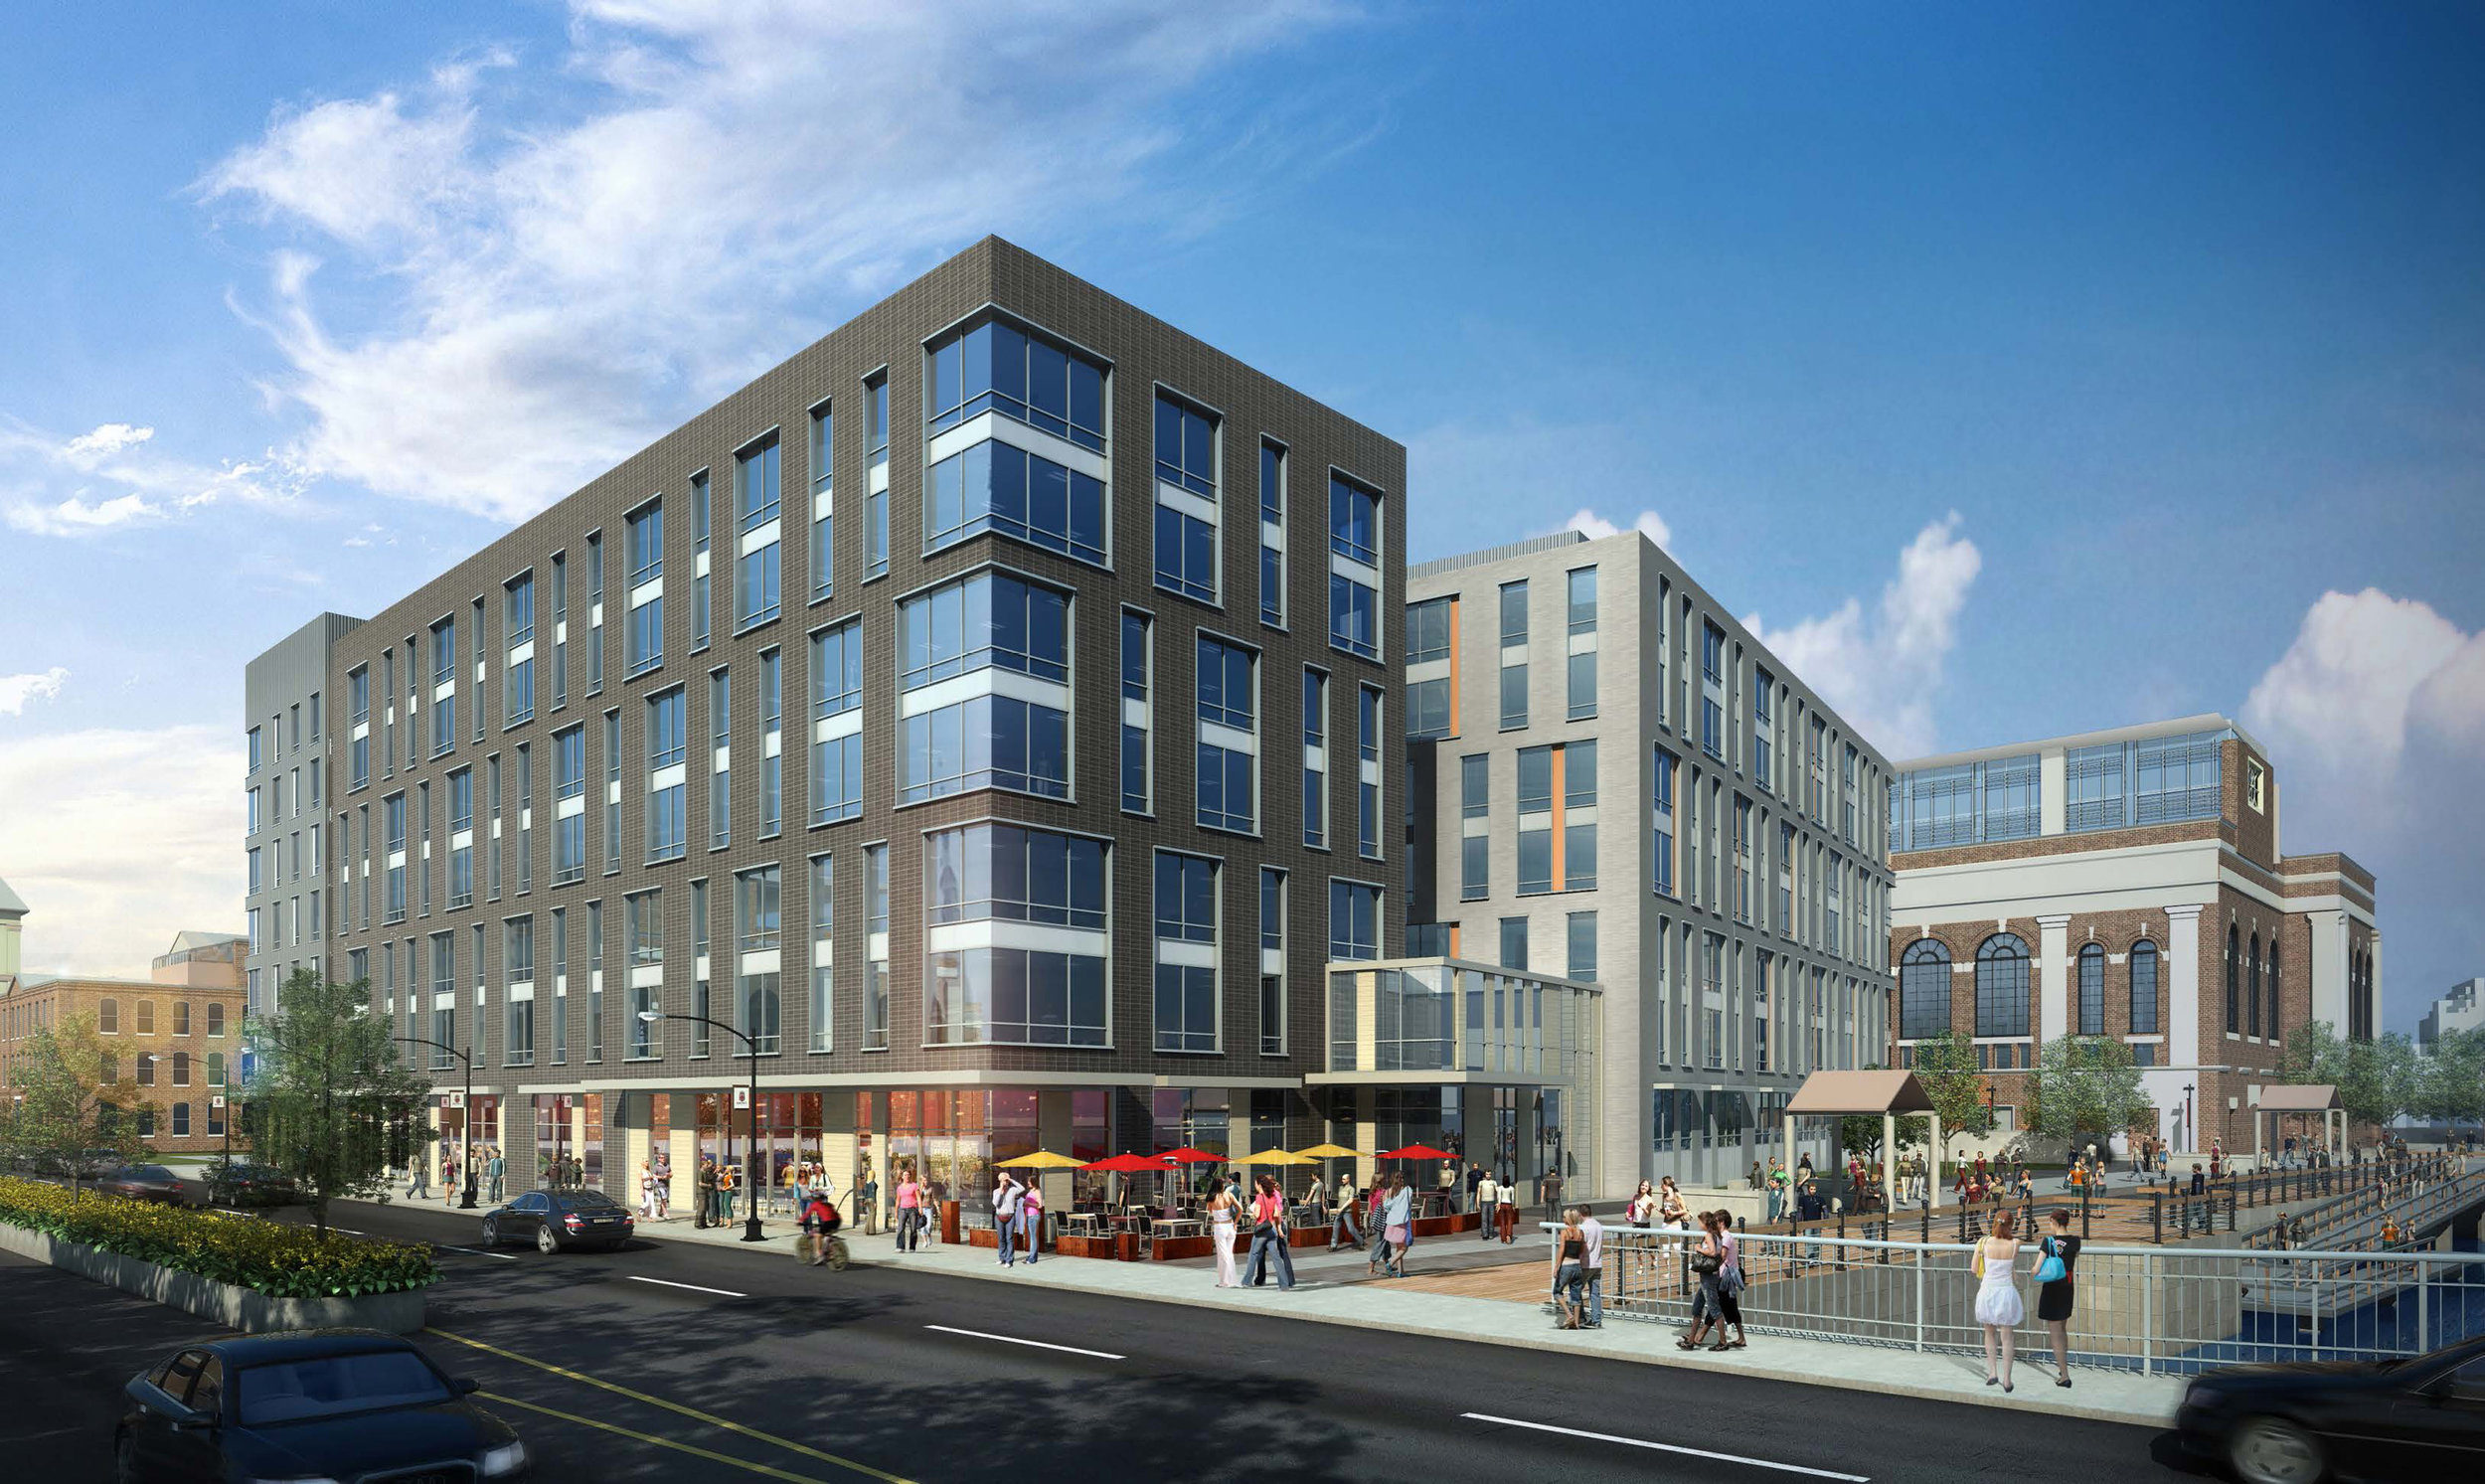 An Exciting P3 Development in Downtown Providence